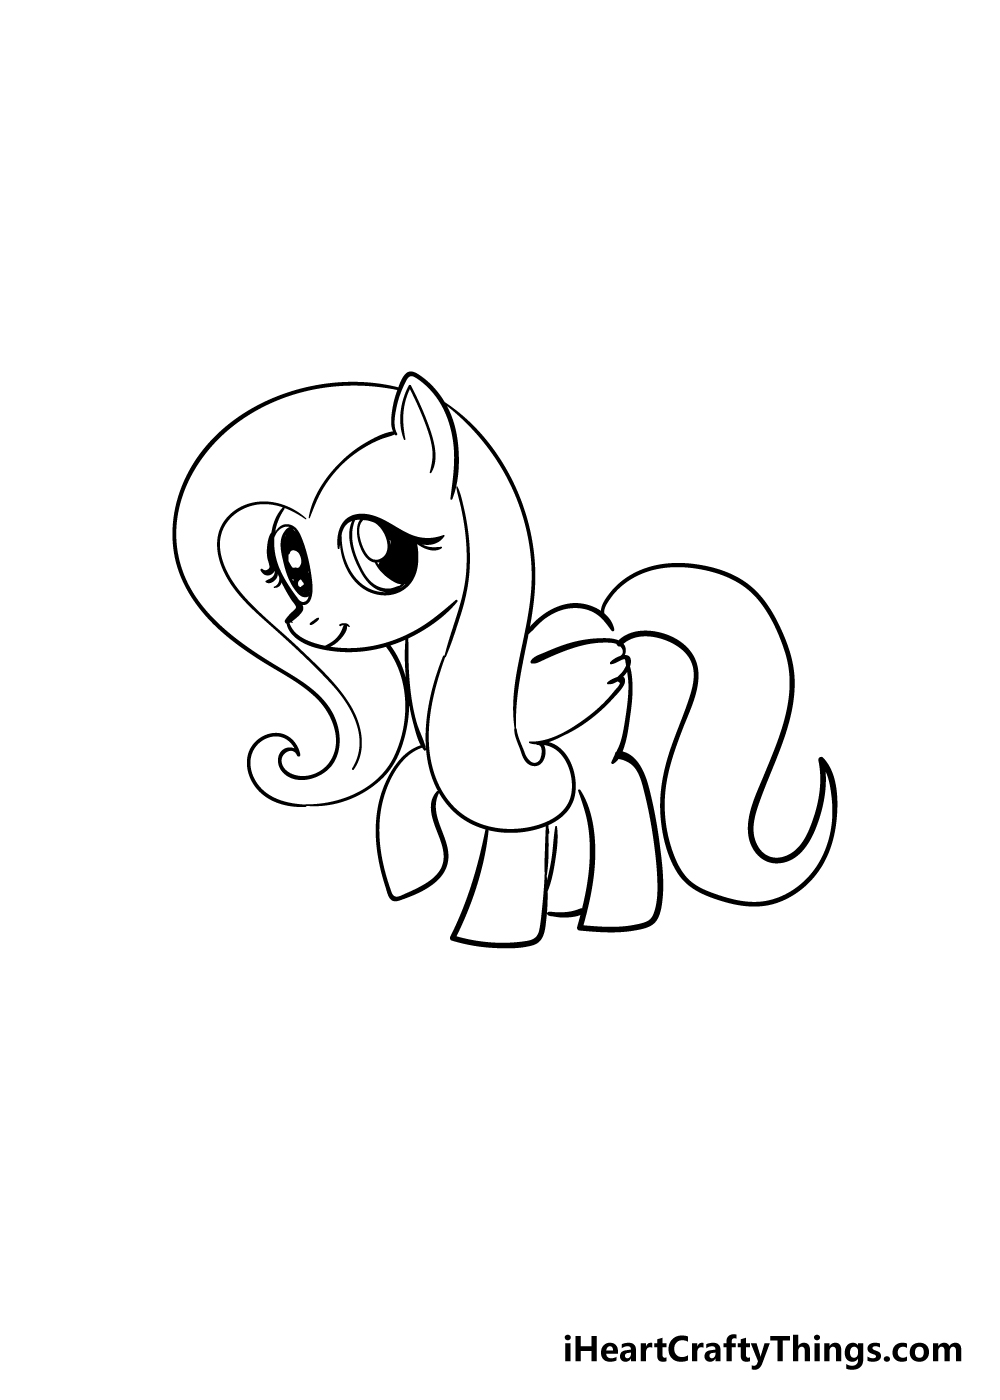 my little pony drawing step 6